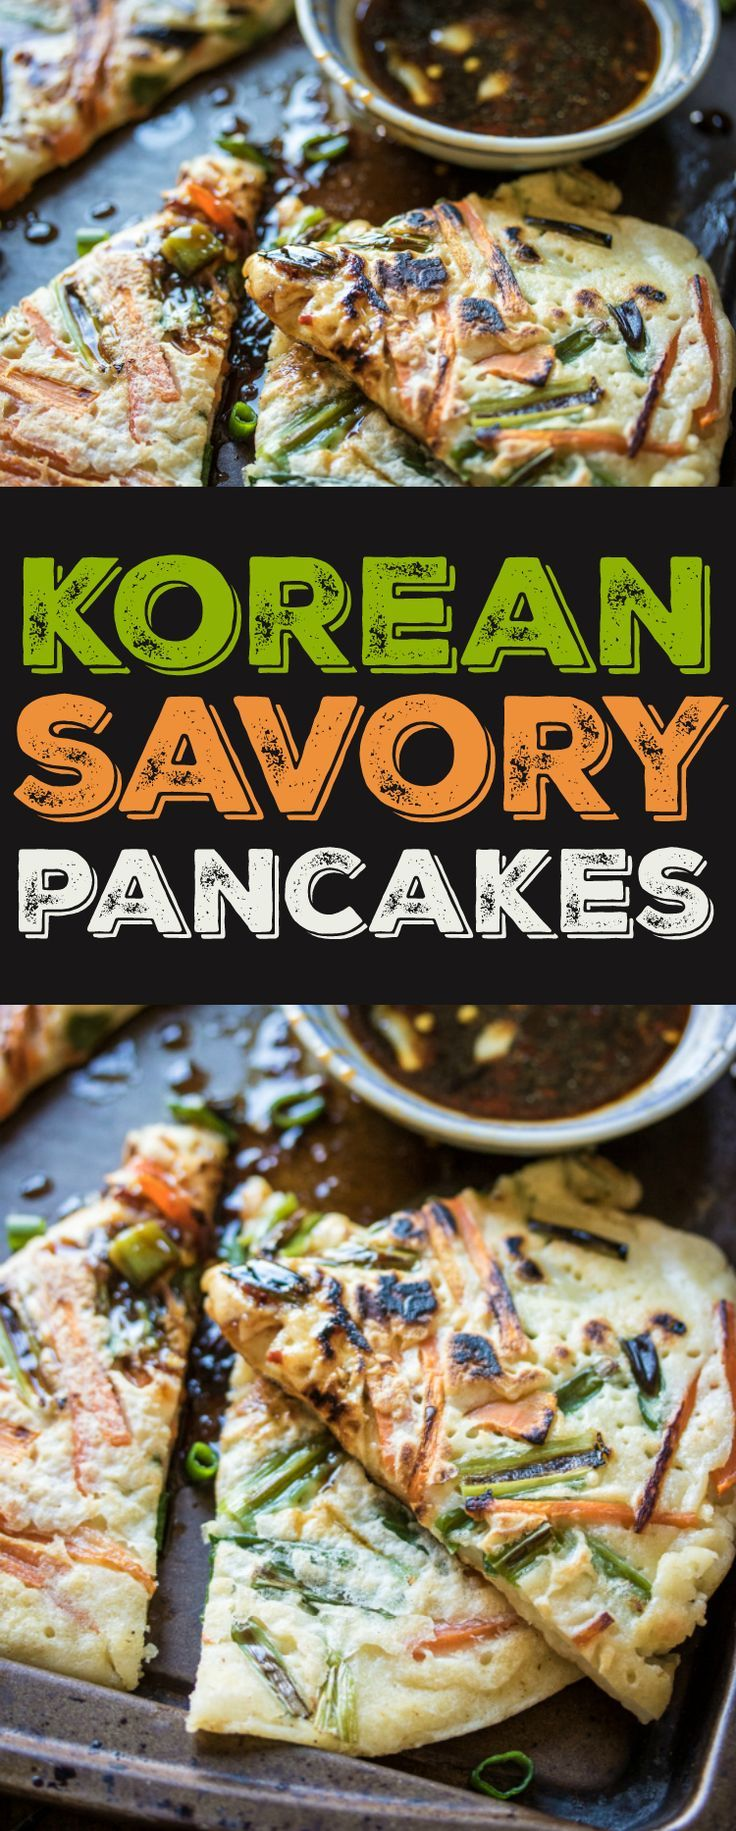 771 best korean food appetizers side dishes images on pinterest 771 best korean food appetizers side dishes images on pinterest korean food recipes korean recipes and cooking food forumfinder Choice Image